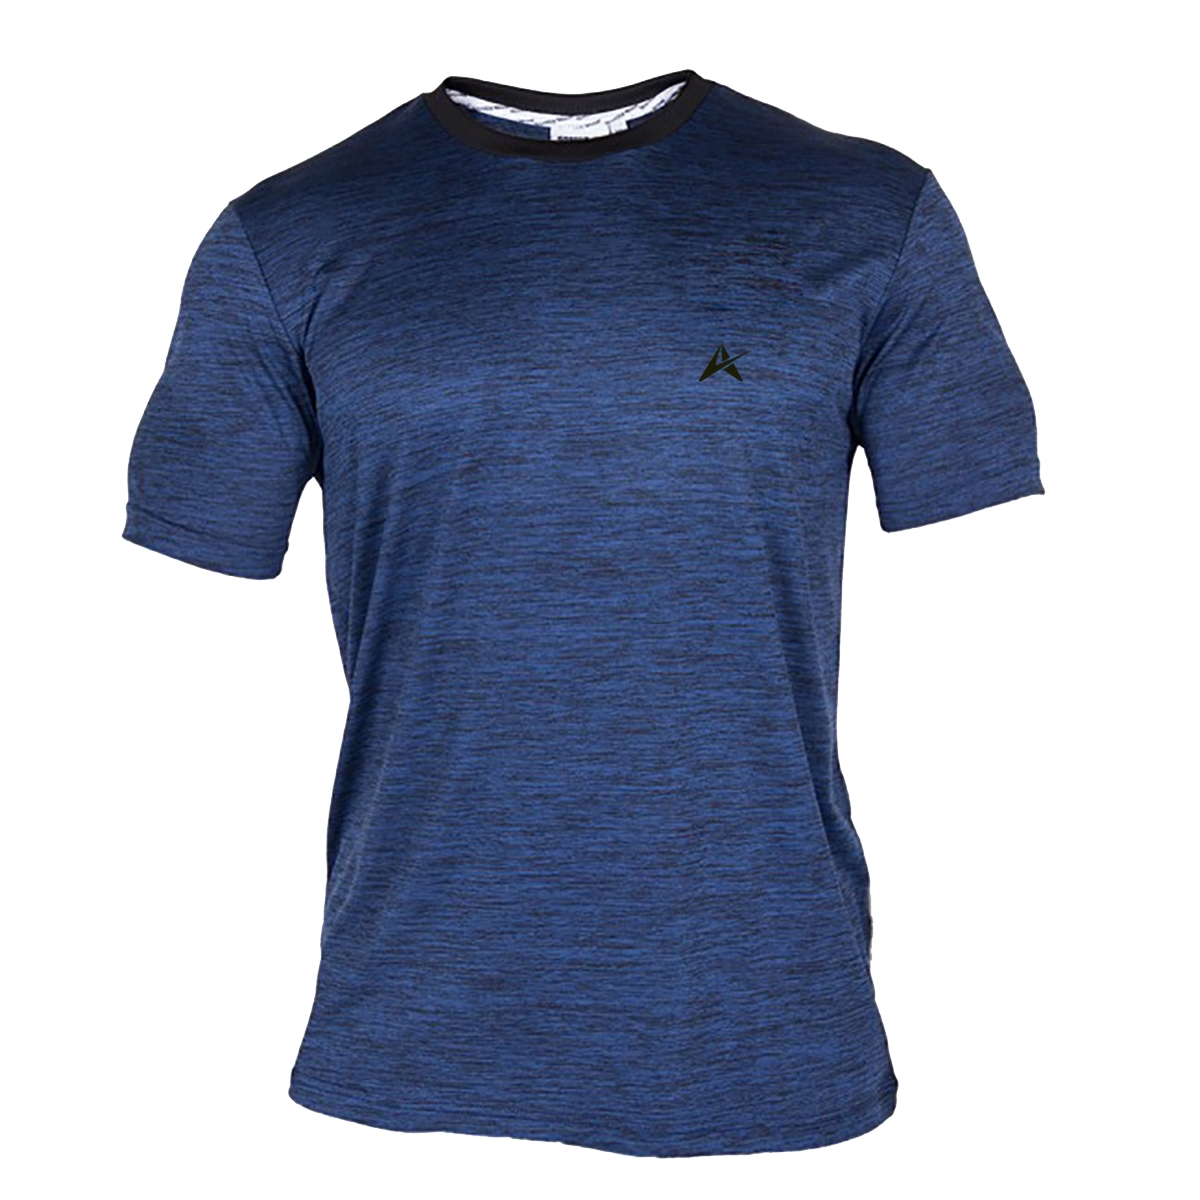 Plain Men's Cotton Crew neck T-Shirt AI-004